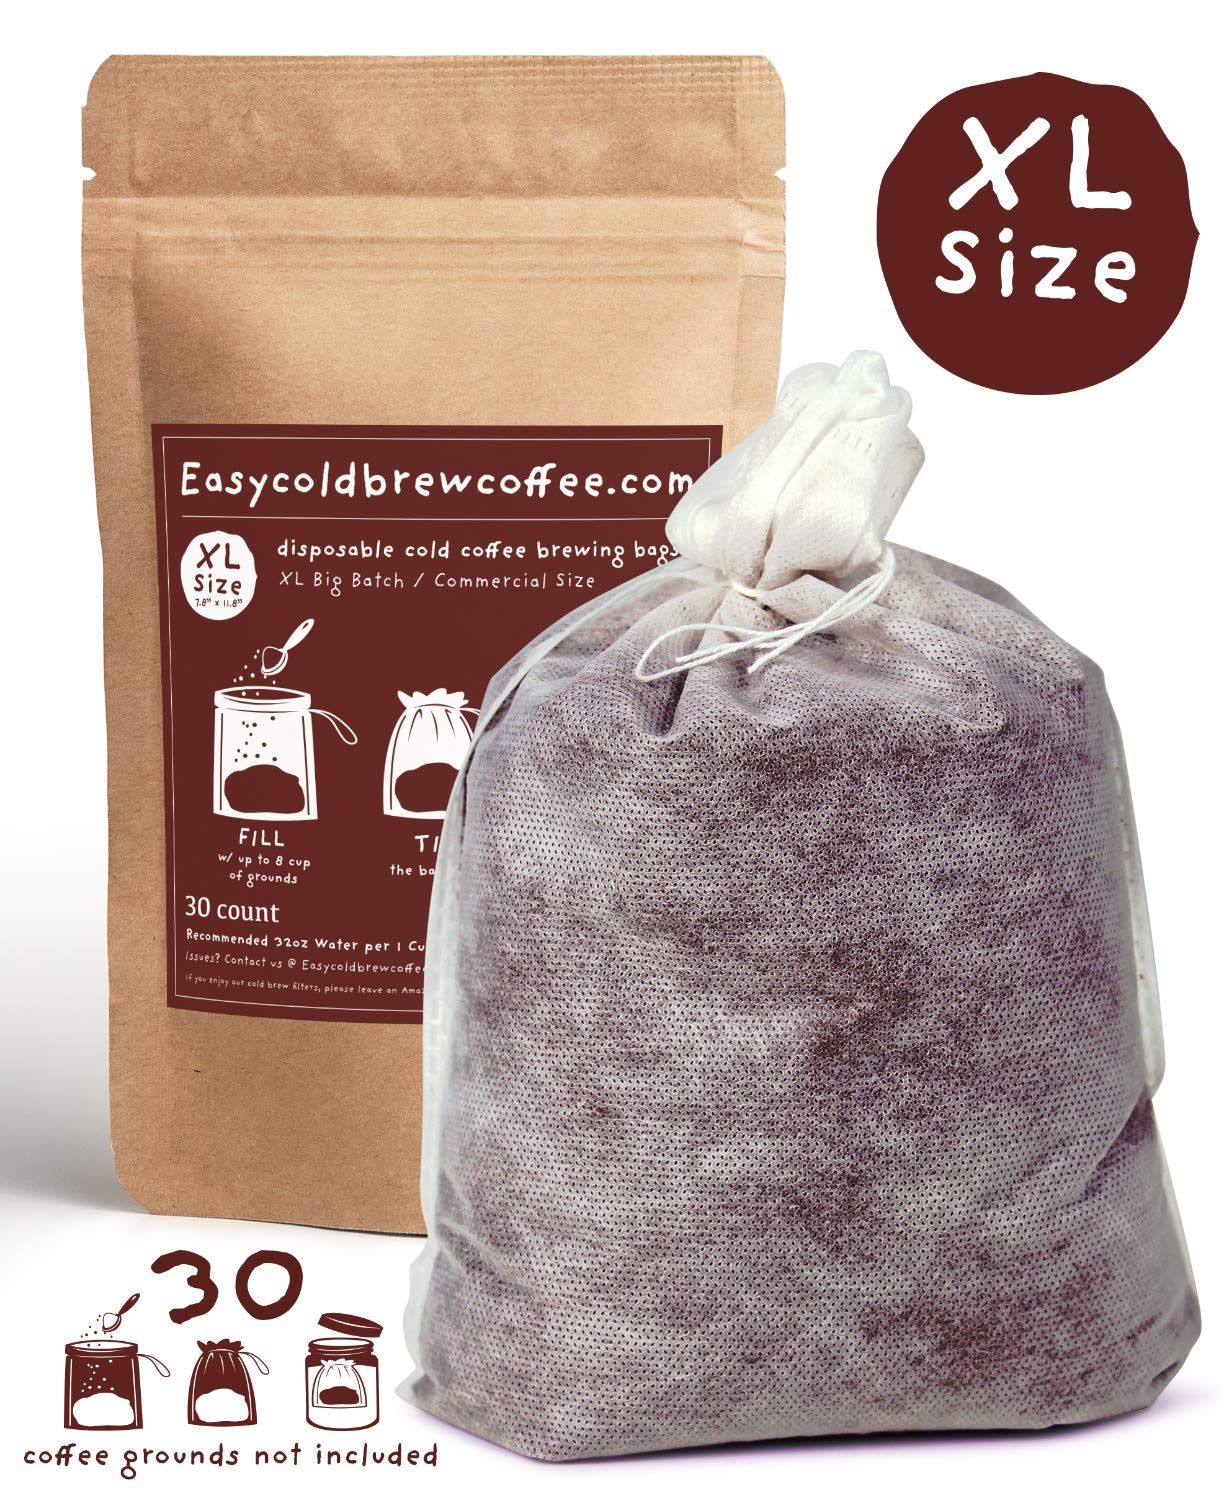 Cold Brew Coffee Filters -Single Use Filter Sock Packs, Disposable, Fine Mesh Brewing Bags for Concentrate, Iced Coffee Maker, French/Cold Press Kit, Tea in Mason Jar or (30 Pack - Commercial Size)